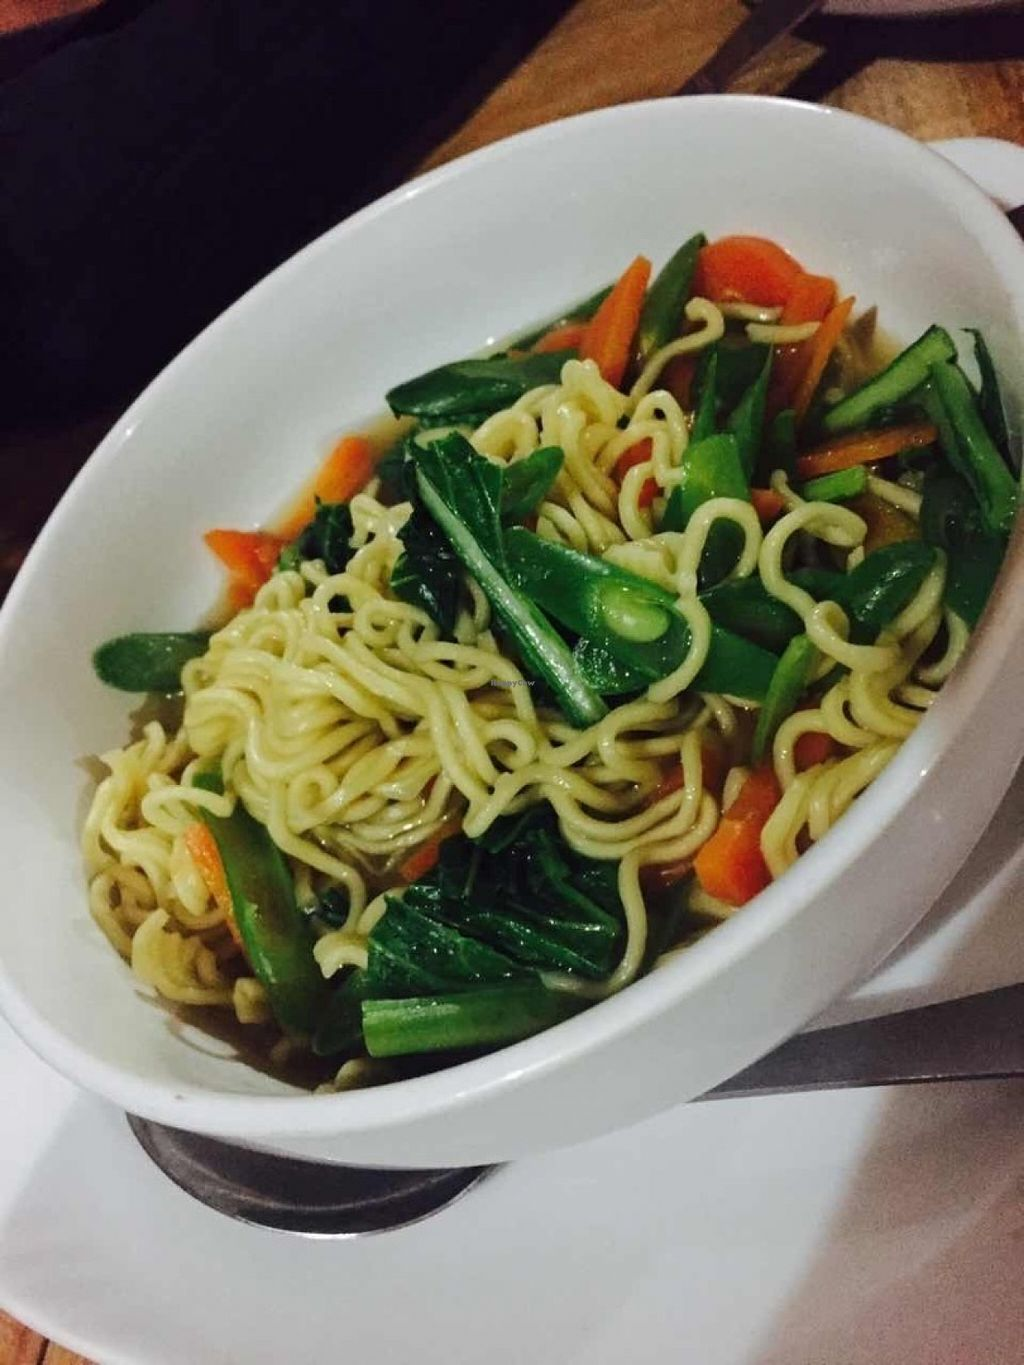 """Photo of Bali Maitreya Cafe  by <a href=""""/members/profile/rodgo"""">rodgo</a> <br/>Instant noodles soup <br/> July 15, 2016  - <a href='/contact/abuse/image/75459/159941'>Report</a>"""